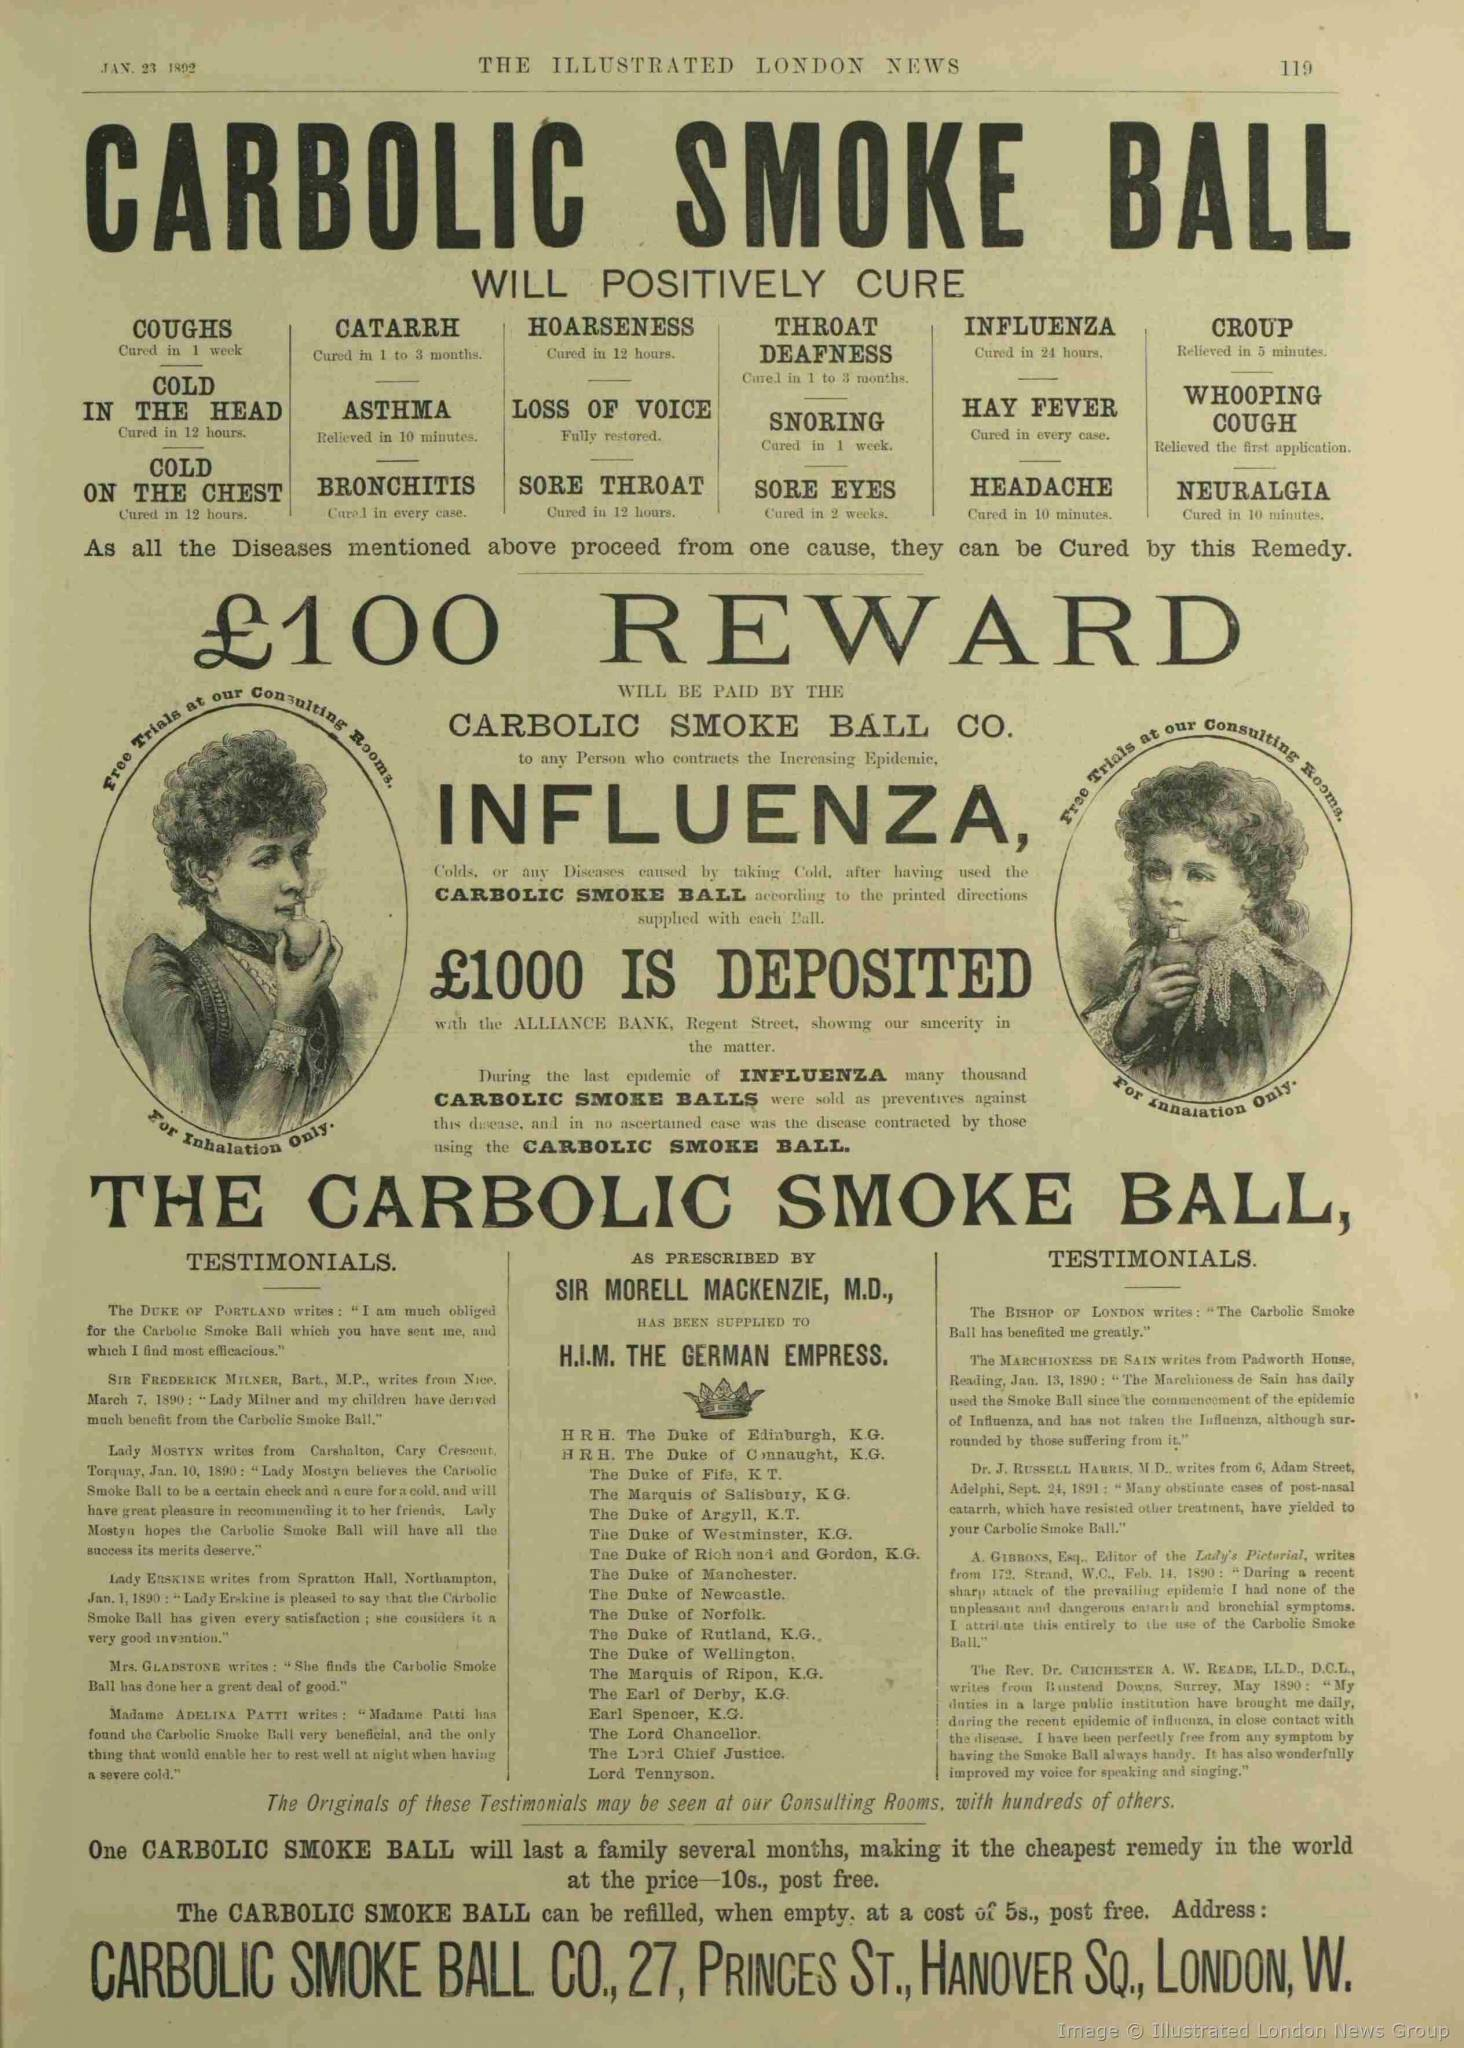 carlill v carbolic smoke ball 1893 Carlill v carbolic smoke ball company [1893] the smoke ball, a device that consisted of a rubber ball with a tube filled with powdered carbolic acid.